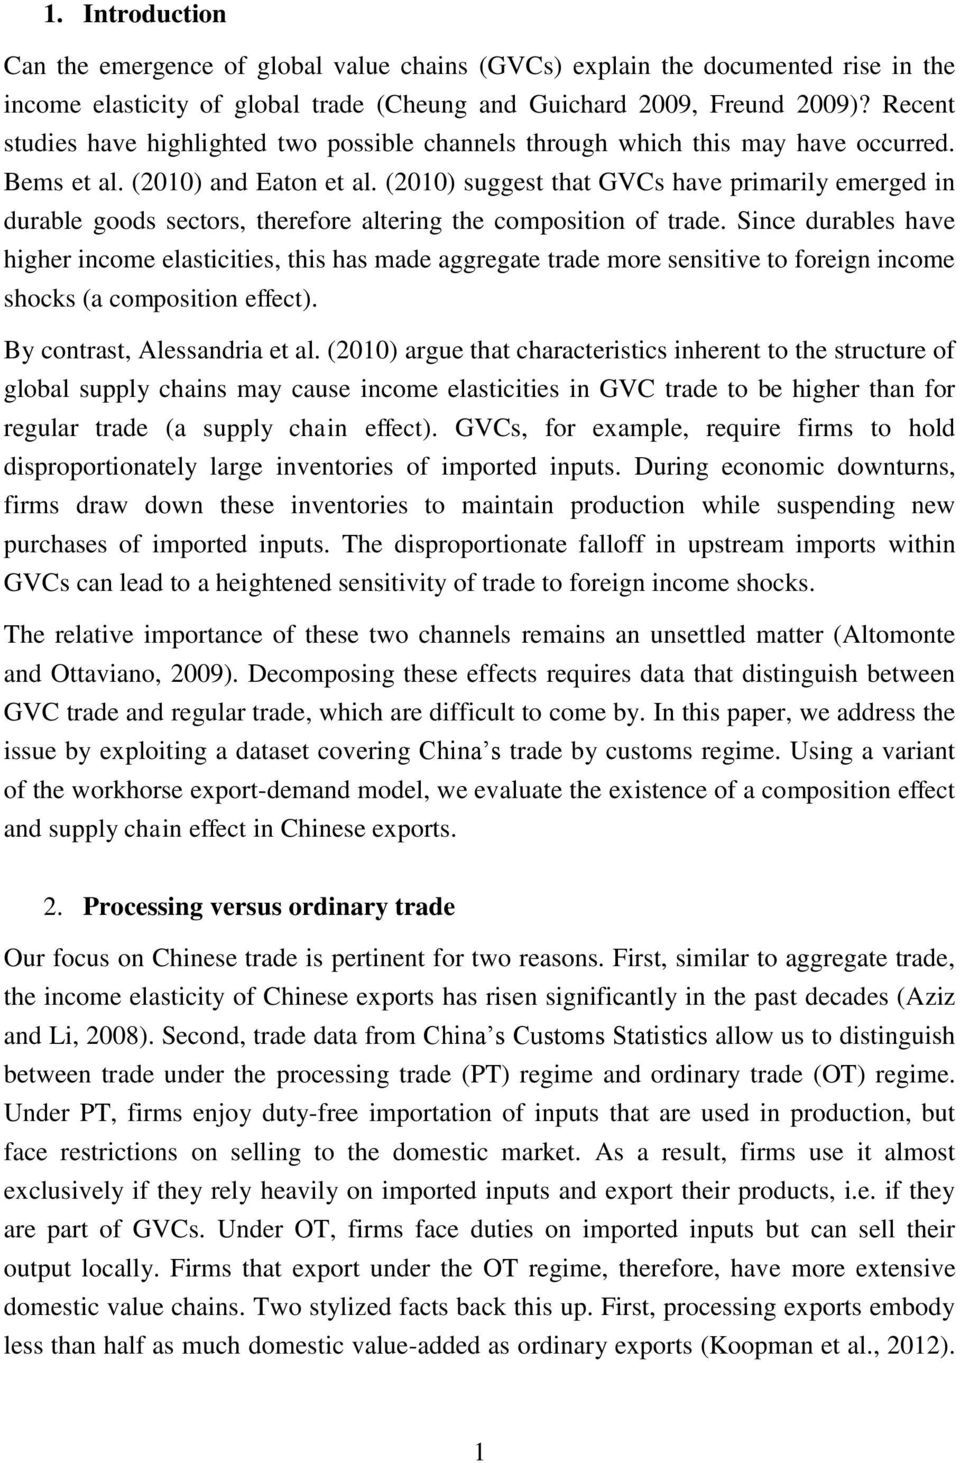 (2010) suggest that GVCs have primarily emerged in durable goods sectors, therefore altering the composition of trade.